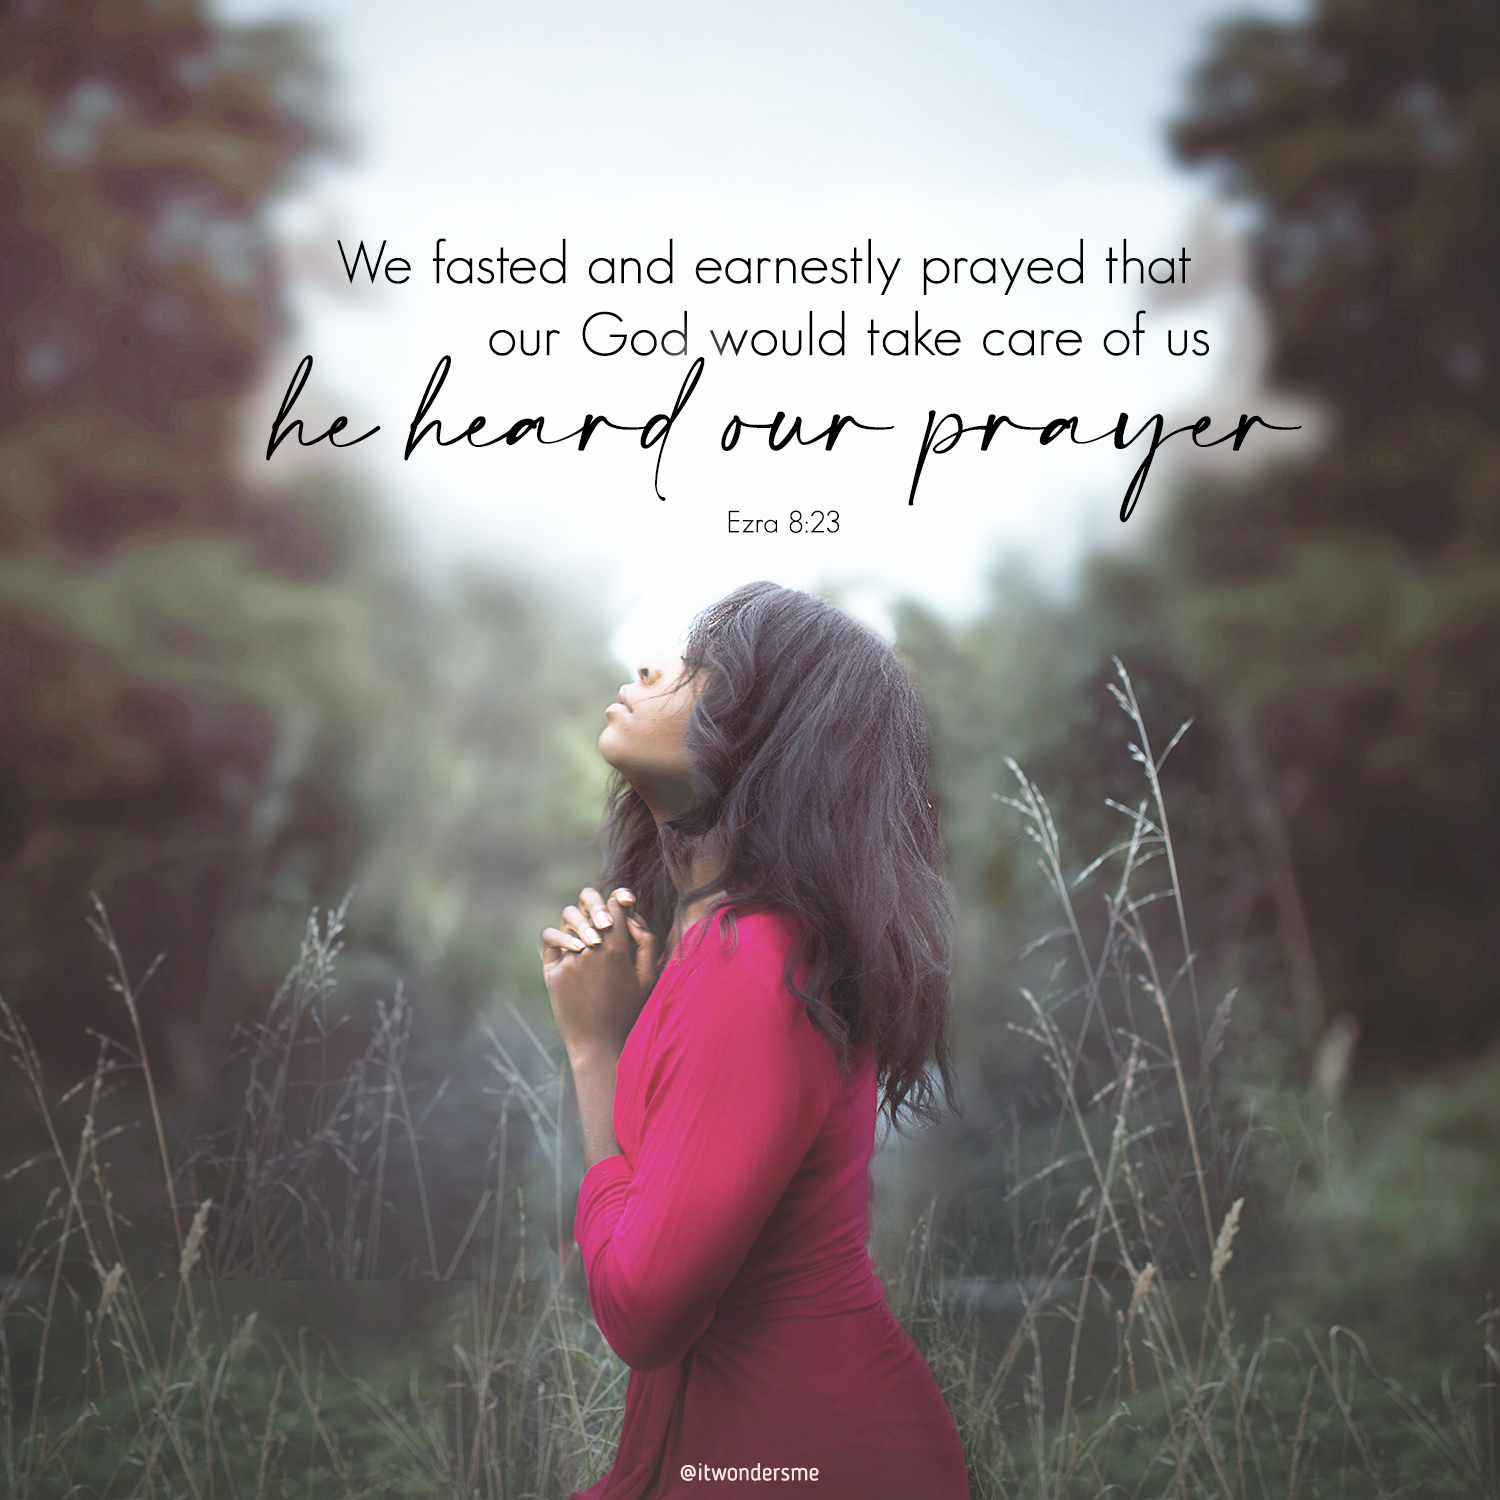 We fasted and God heard our prayer